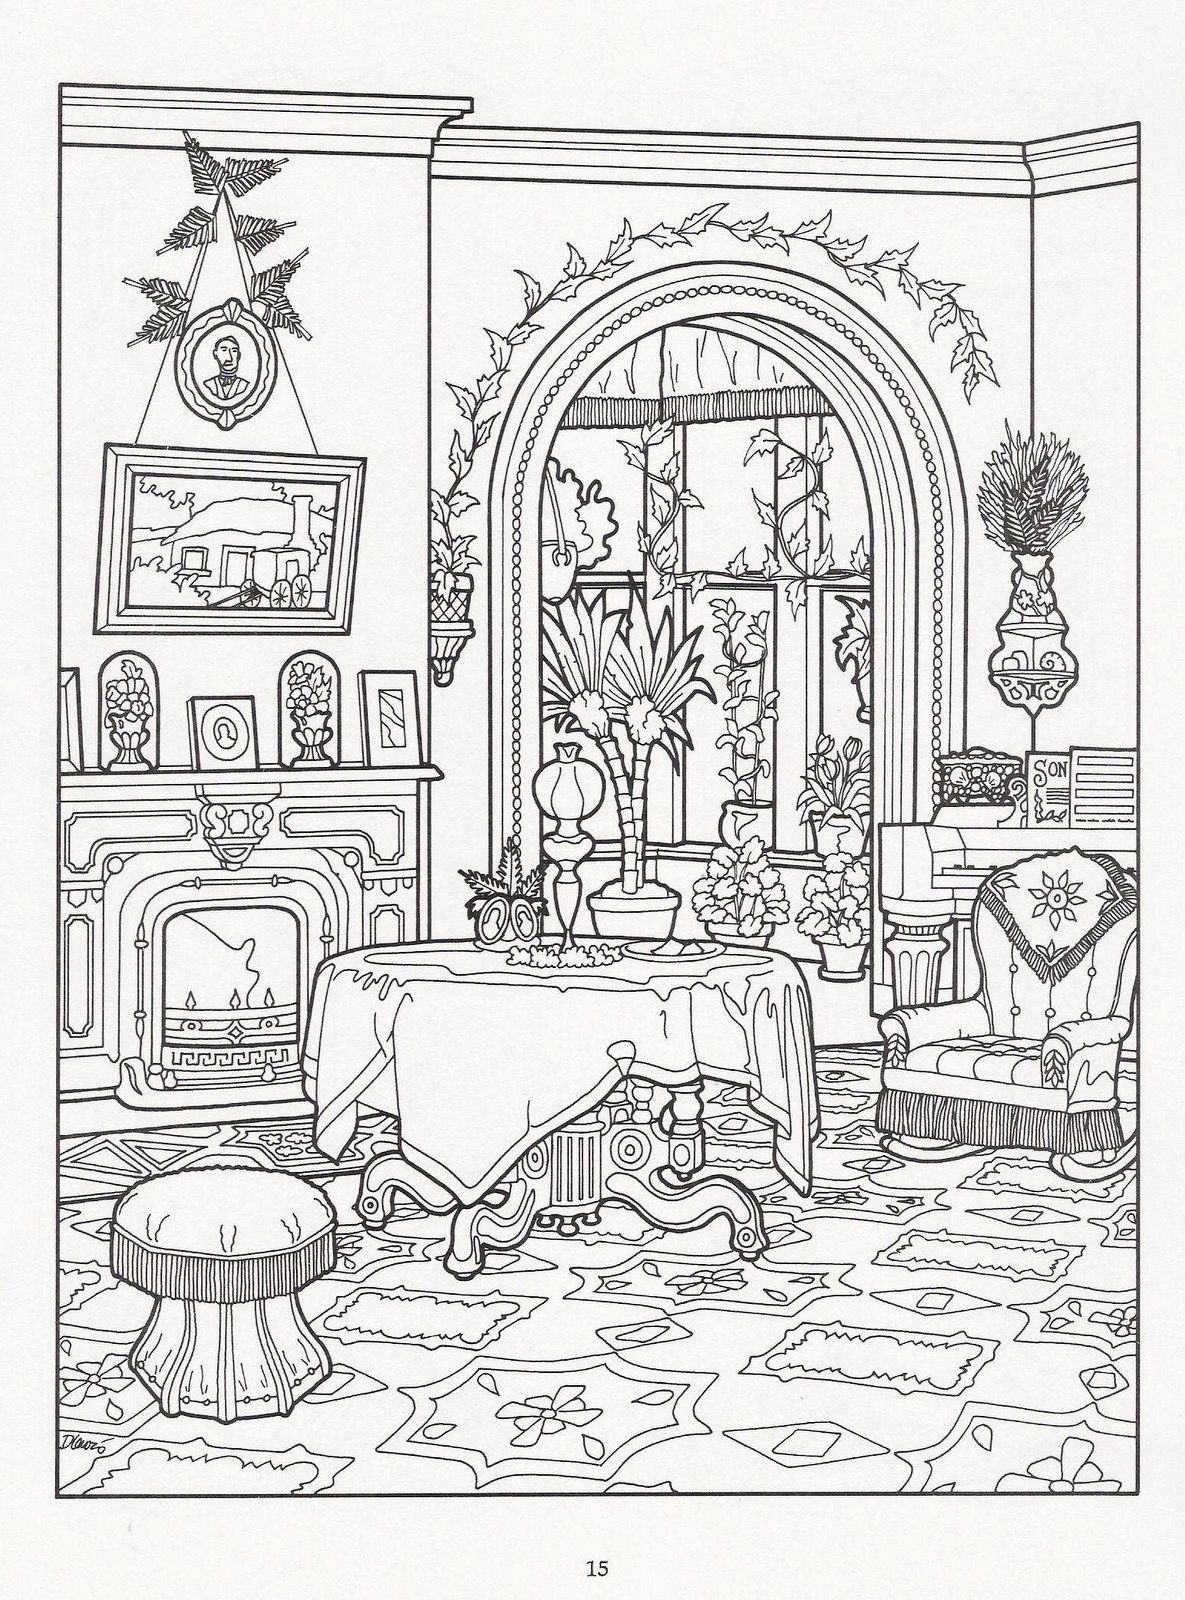 Victorian room house colouring pages adult coloring book pages coloring pages for grown ups